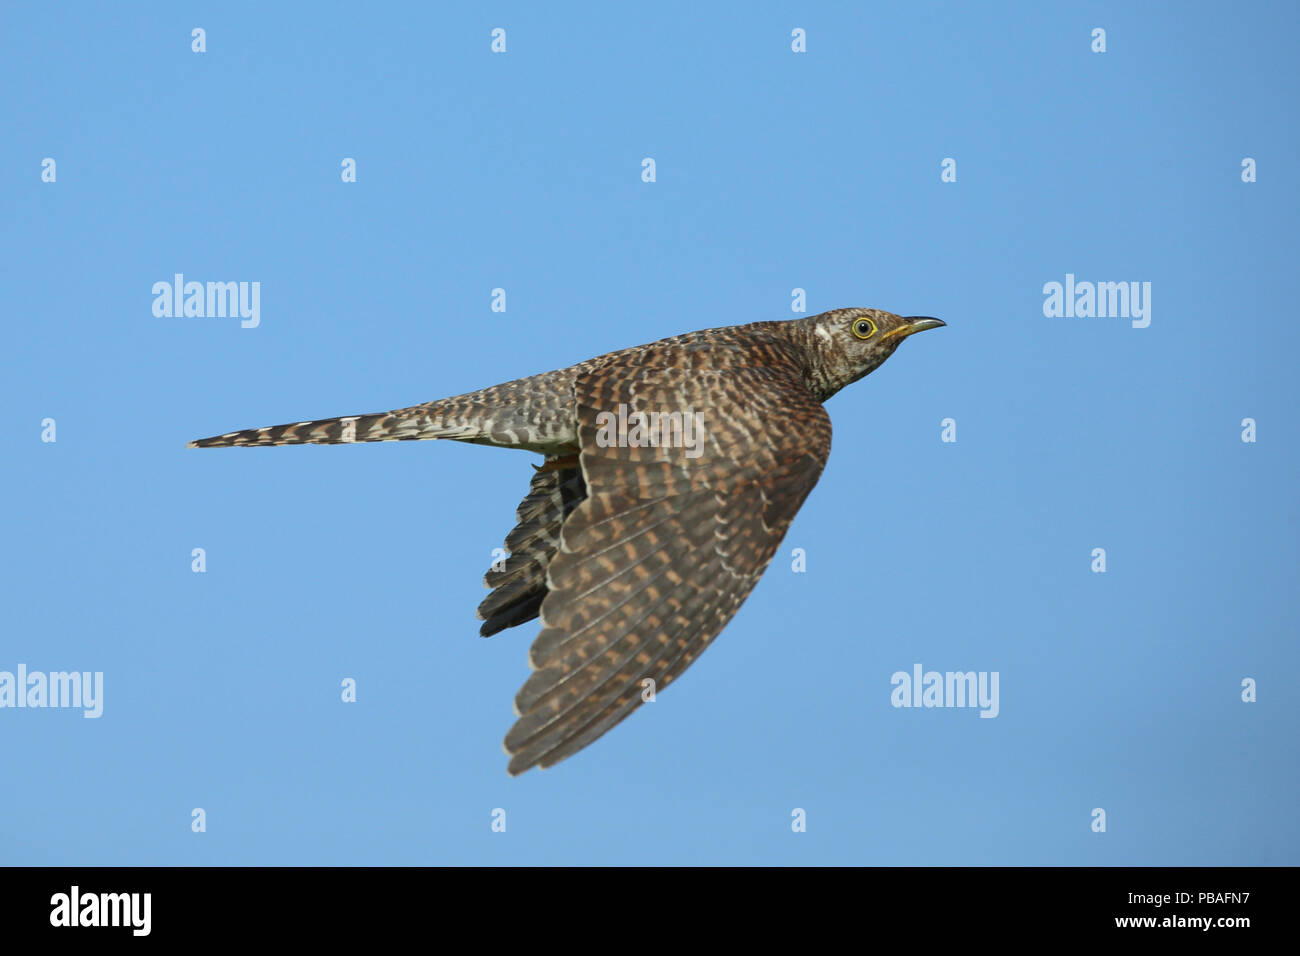 Common cuckoo (Cuculus canorus) in flight, Oman, November - Stock Image